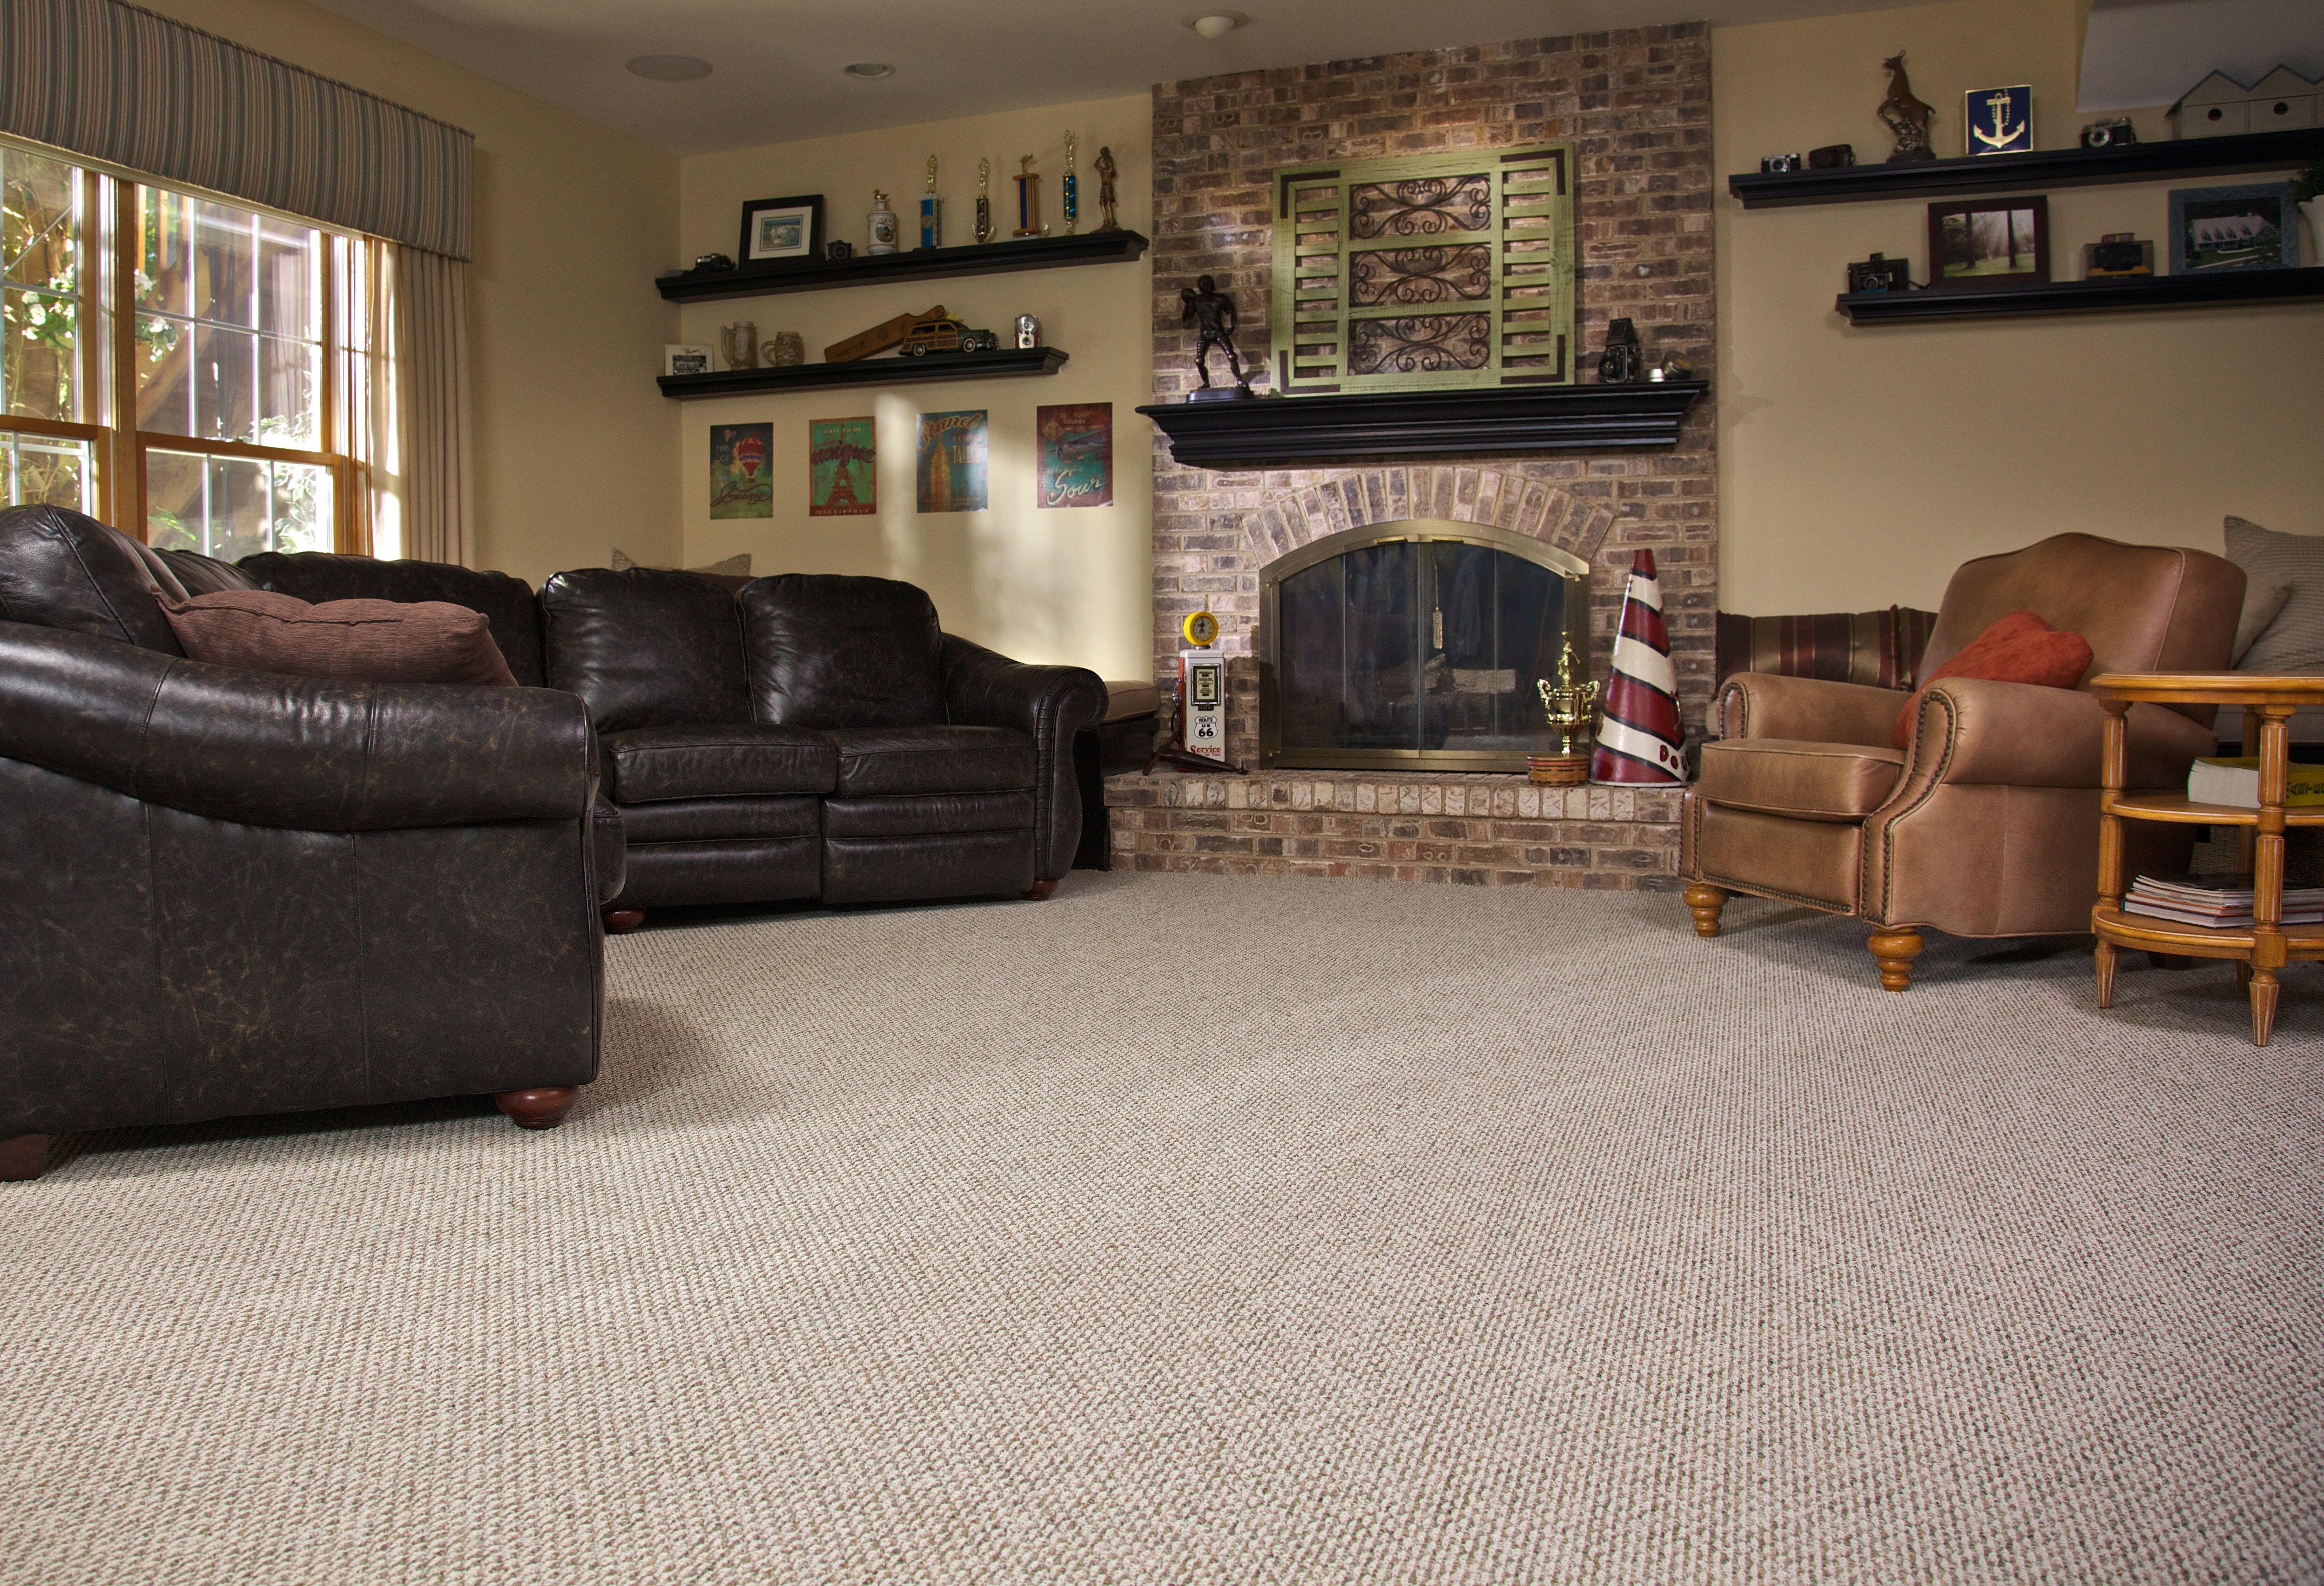 Pin by Empire Today on Comfy Living Rooms | Berber carpet ...